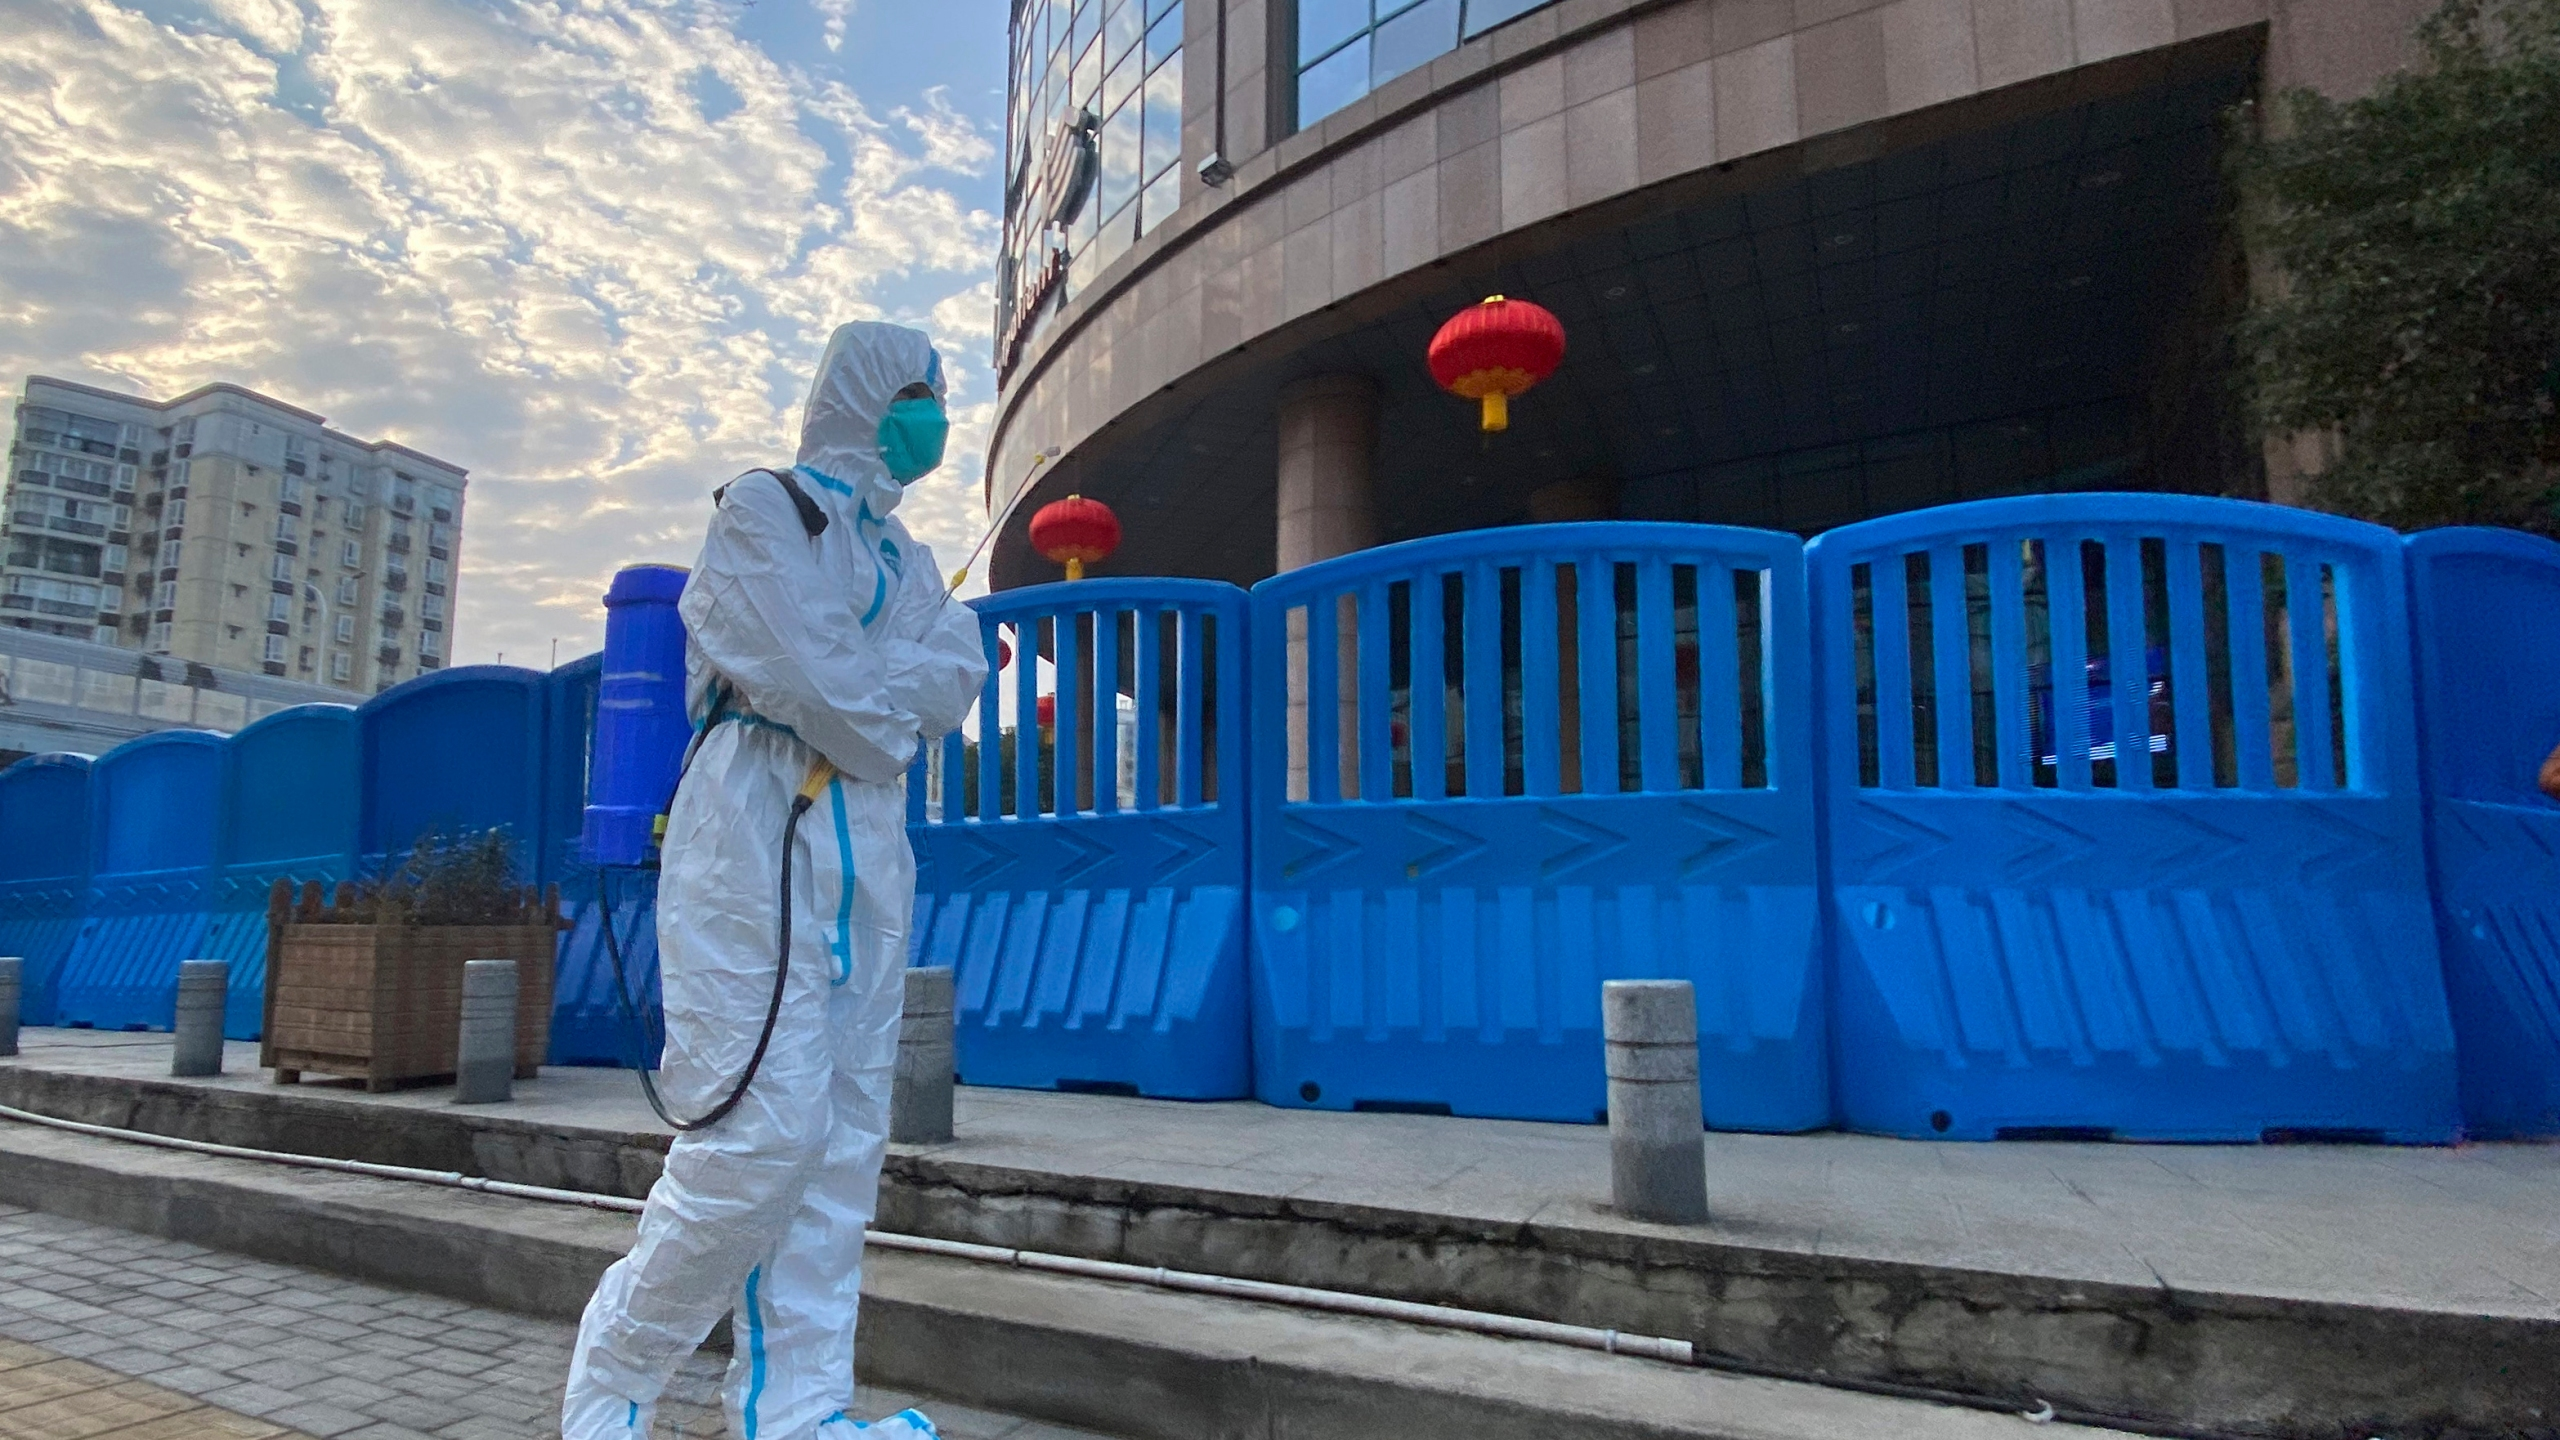 In this Feb. 6, 2021, file a worker in protectively overalls and carrying disinfecting equipment walks outside the Wuhan Central Hospital where Li Wenliang, the whistleblower doctor who sounded the alarm and was reprimanded by local police for it in the early days of Wuhan's pandemic, worked in Wuhan in central China. U.S. intelligence agencies remain divided on the origins of the coronavirus but believe China's leaders did not know about the virus before the start of the global pandemic, according to results released Friday, Aug. 27, of a review ordered by President Joe Biden. (AP Photo/Ng Han Guan, File)